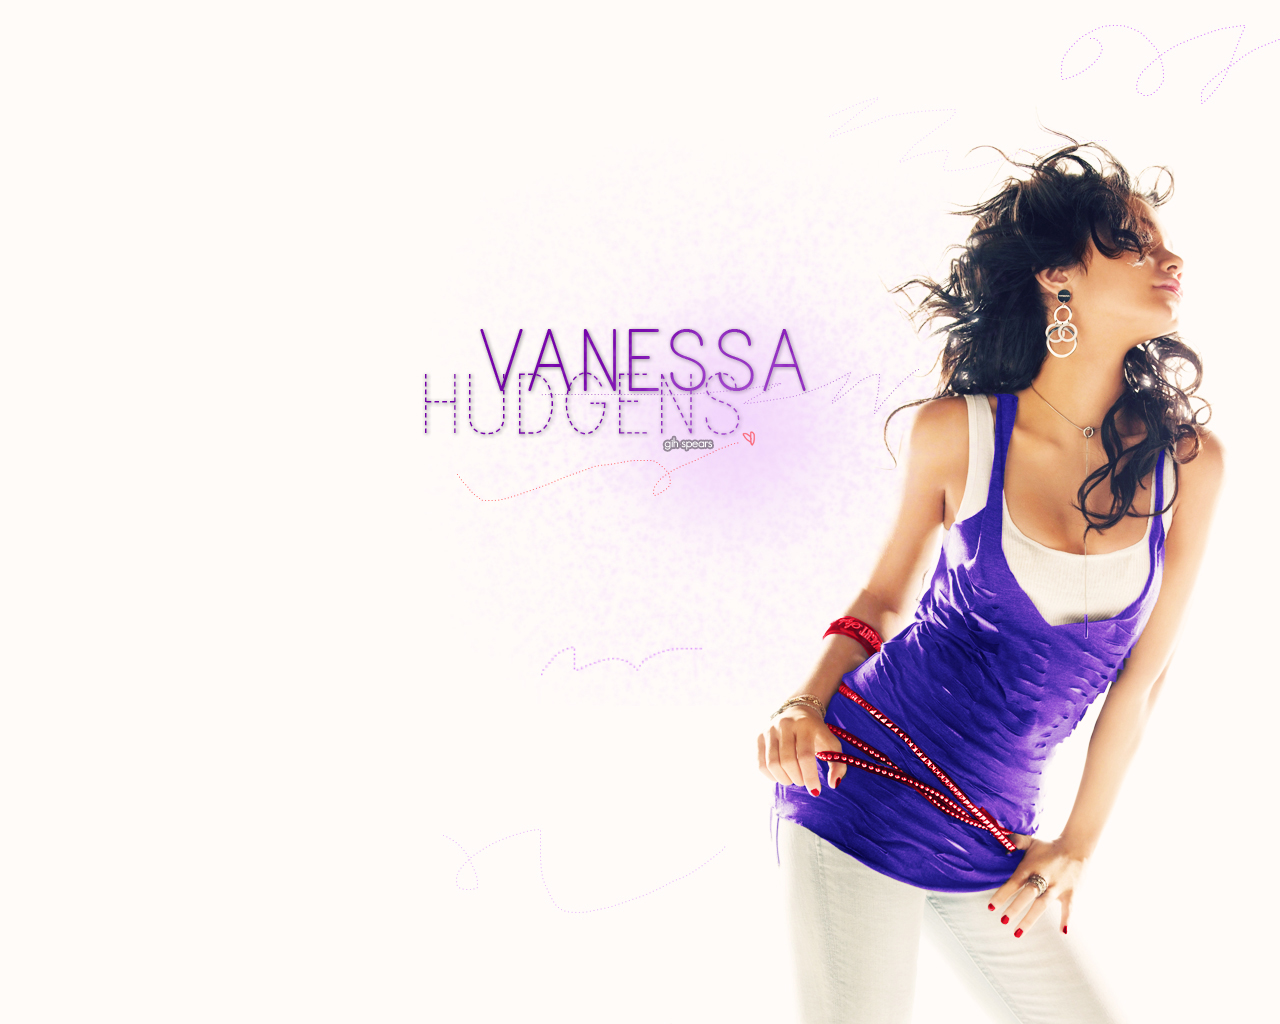 Vanessa hudgens wallpaper by gihspears on deviantart vanessa hudgens wallpaper by gihspears vanessa hudgens wallpaper by gihspears voltagebd Image collections